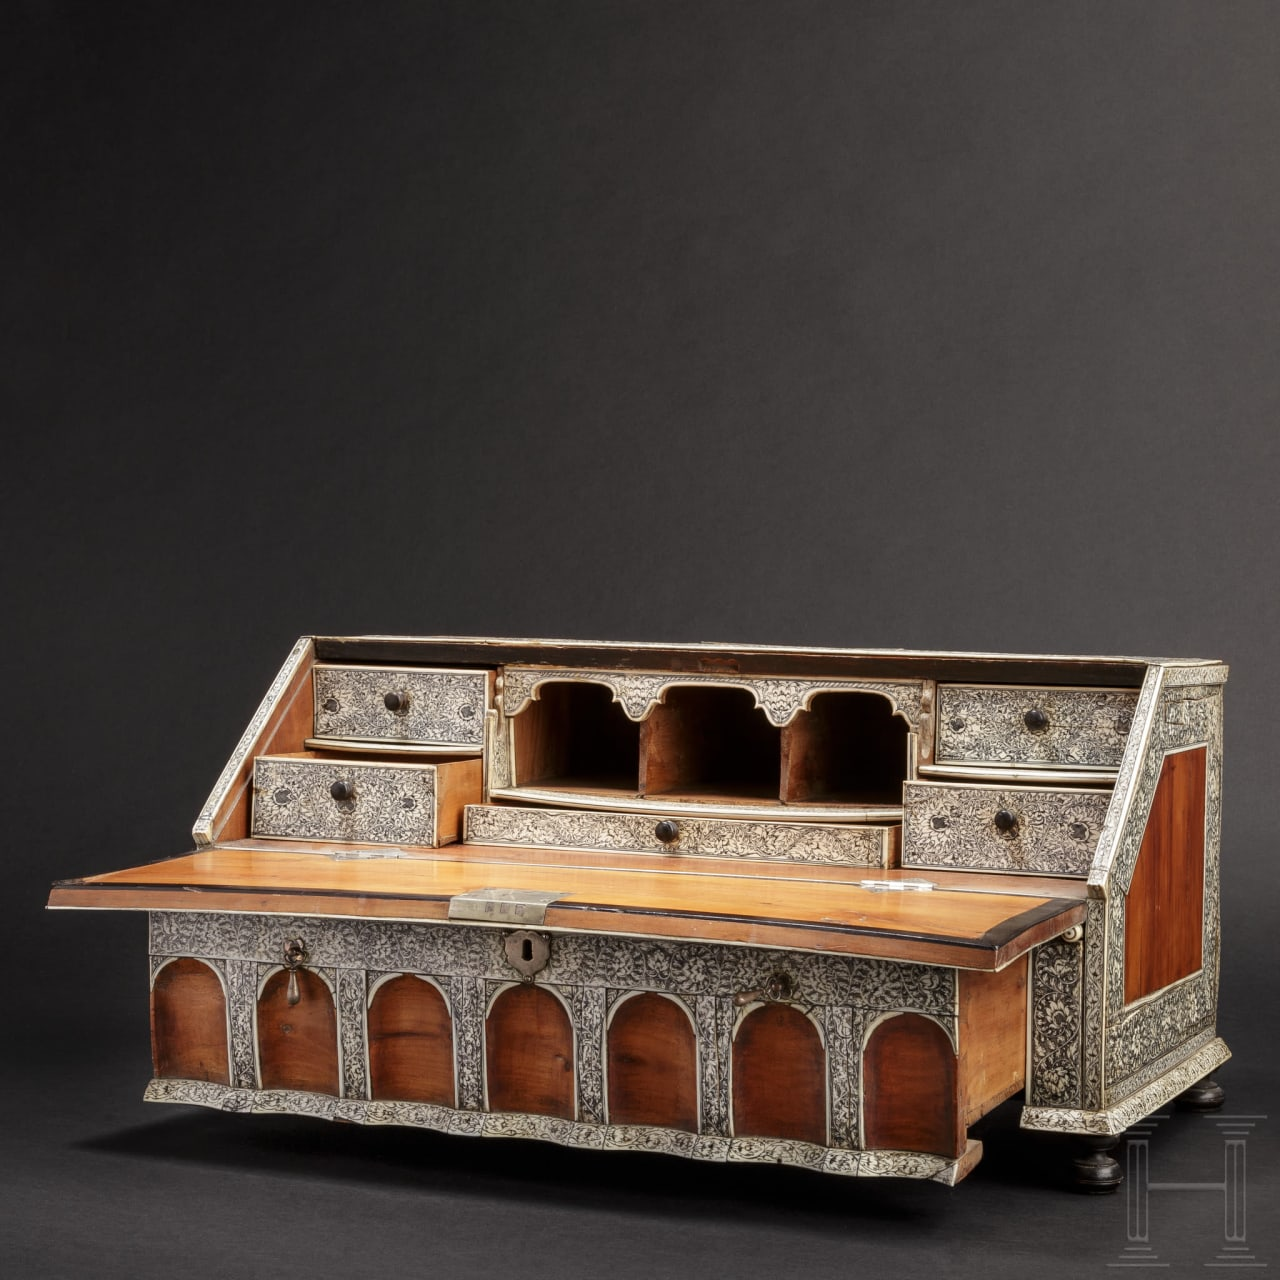 An exquisite table cabinet, Vizapatagam, circa 1740 – 1760